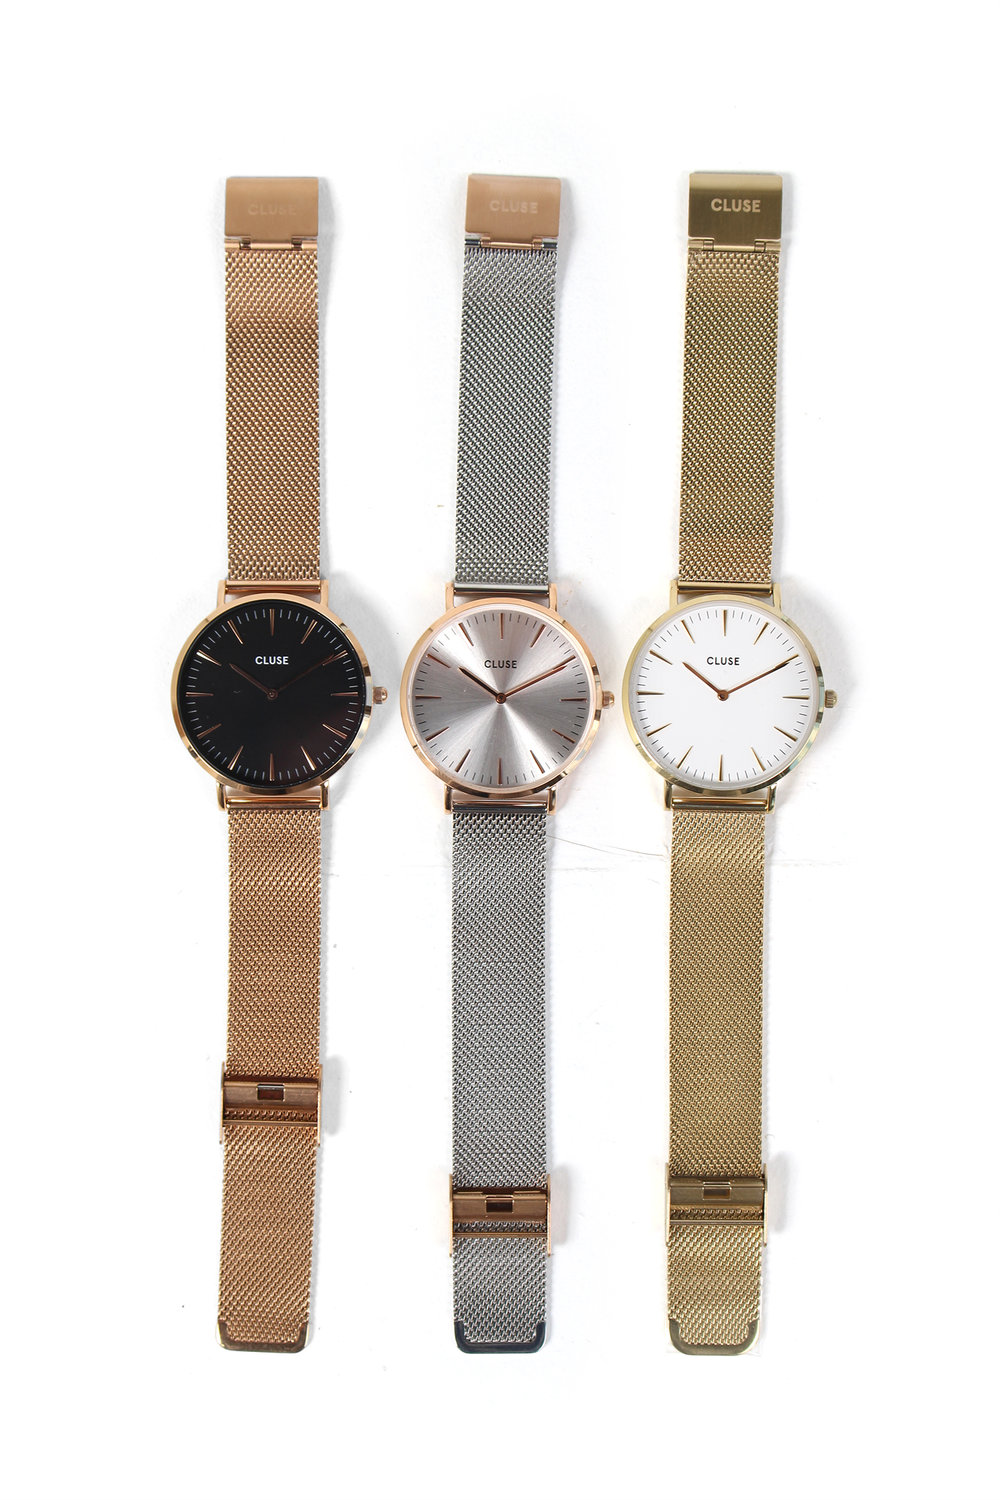 Timepieces that aspire to be part of people who are conscious about their style. A CLUSE watch brings the best out of your look and completes your outfit. CLUSE is there not only to indicate time, but to define your best moments and captivate attention in all simplicity, found at e.Allen. $68-$132